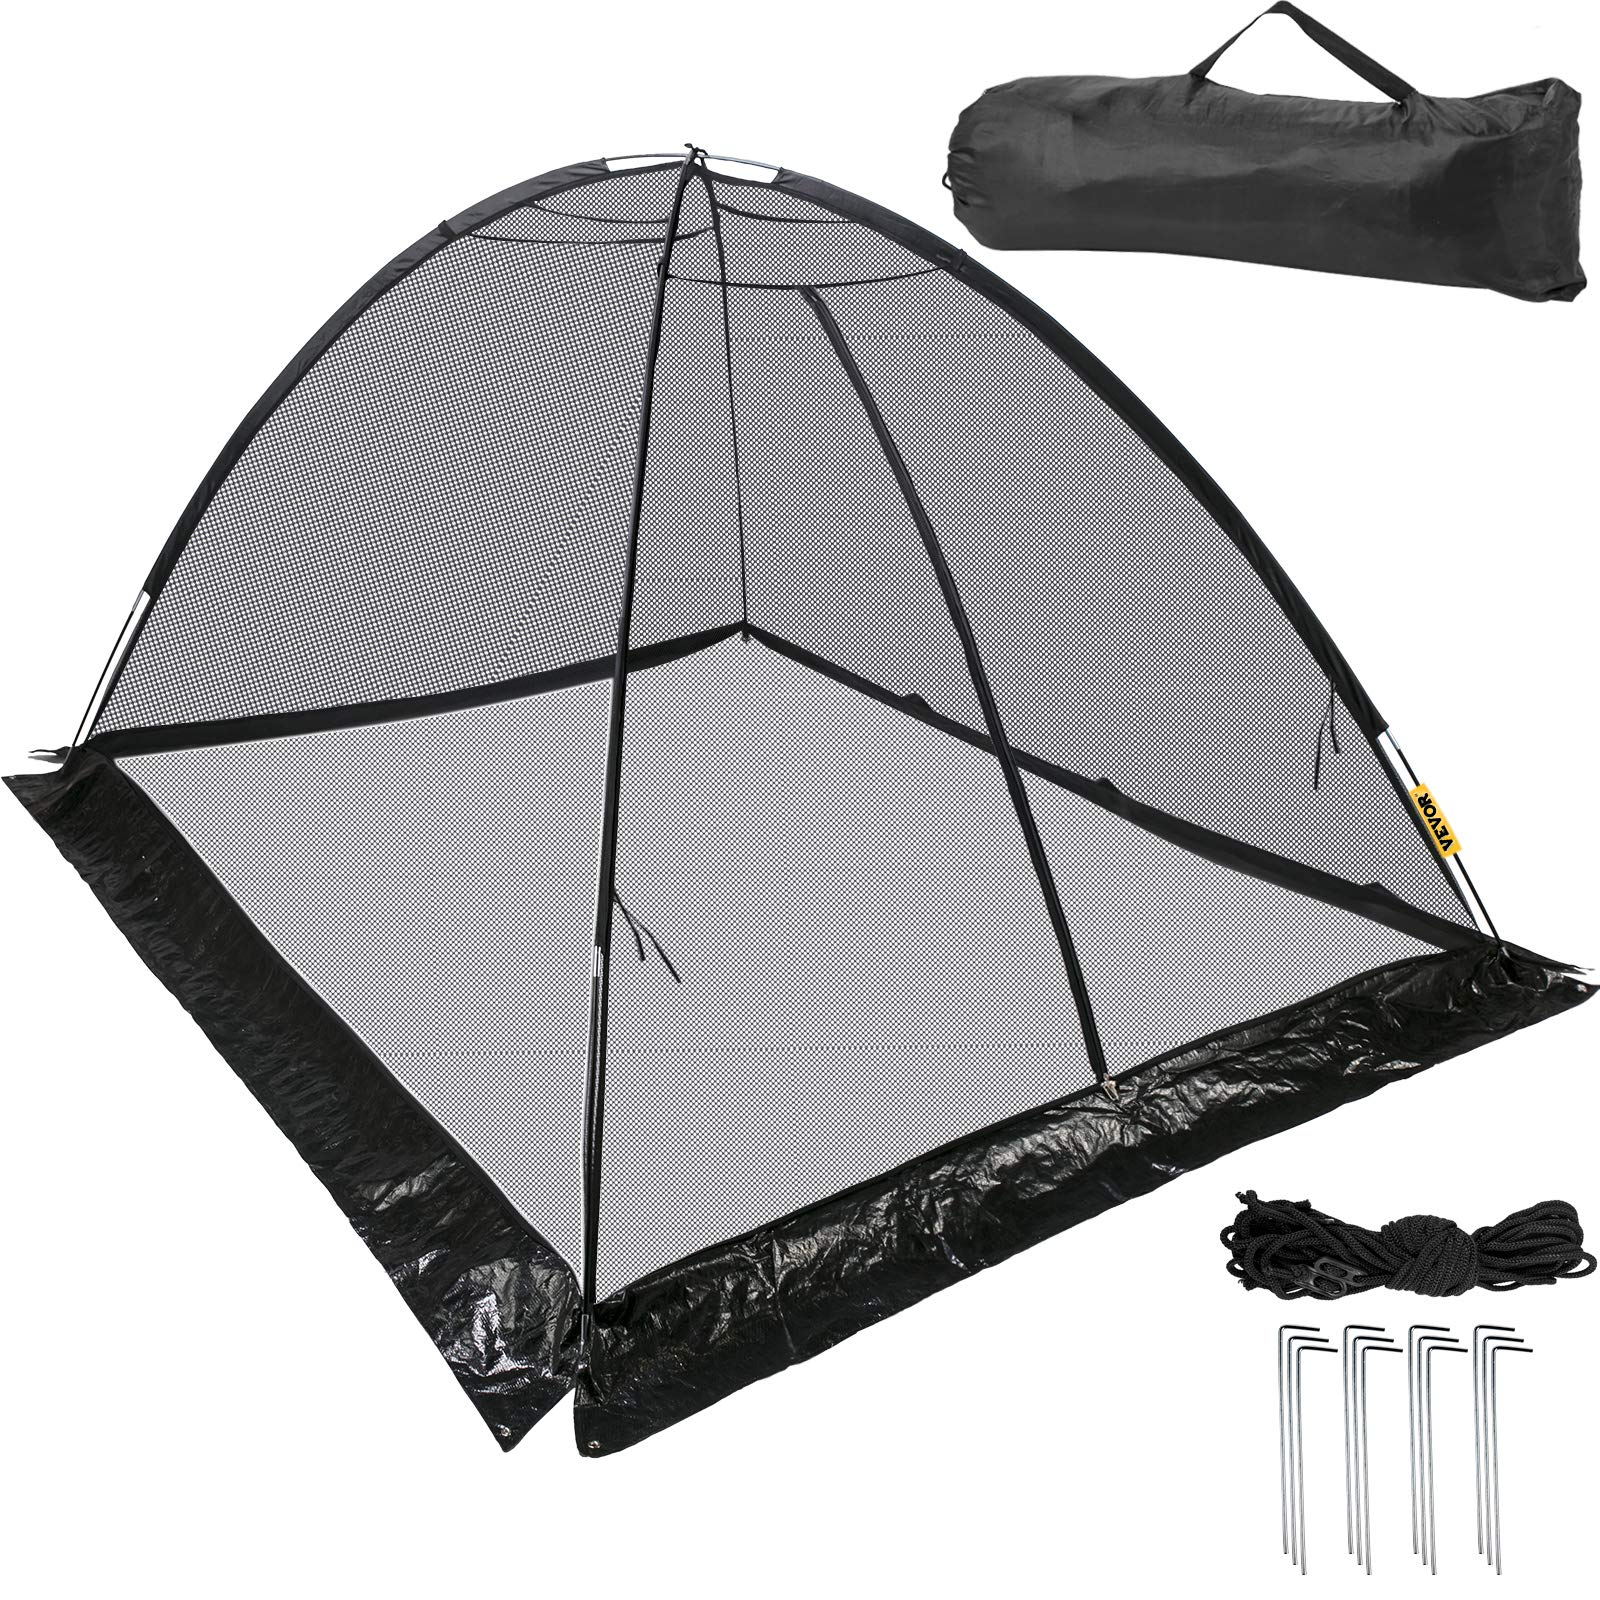 Happybuy Pond Cover Dome, 7x9 FT Garden Pond Net, 1/2 inch Mesh Dome Pond Net Covers with Zipper and Wind Rope, Black Nylon Pond Netting for Pond Pool and Garden to Keep Out Leaves Debris and Animals